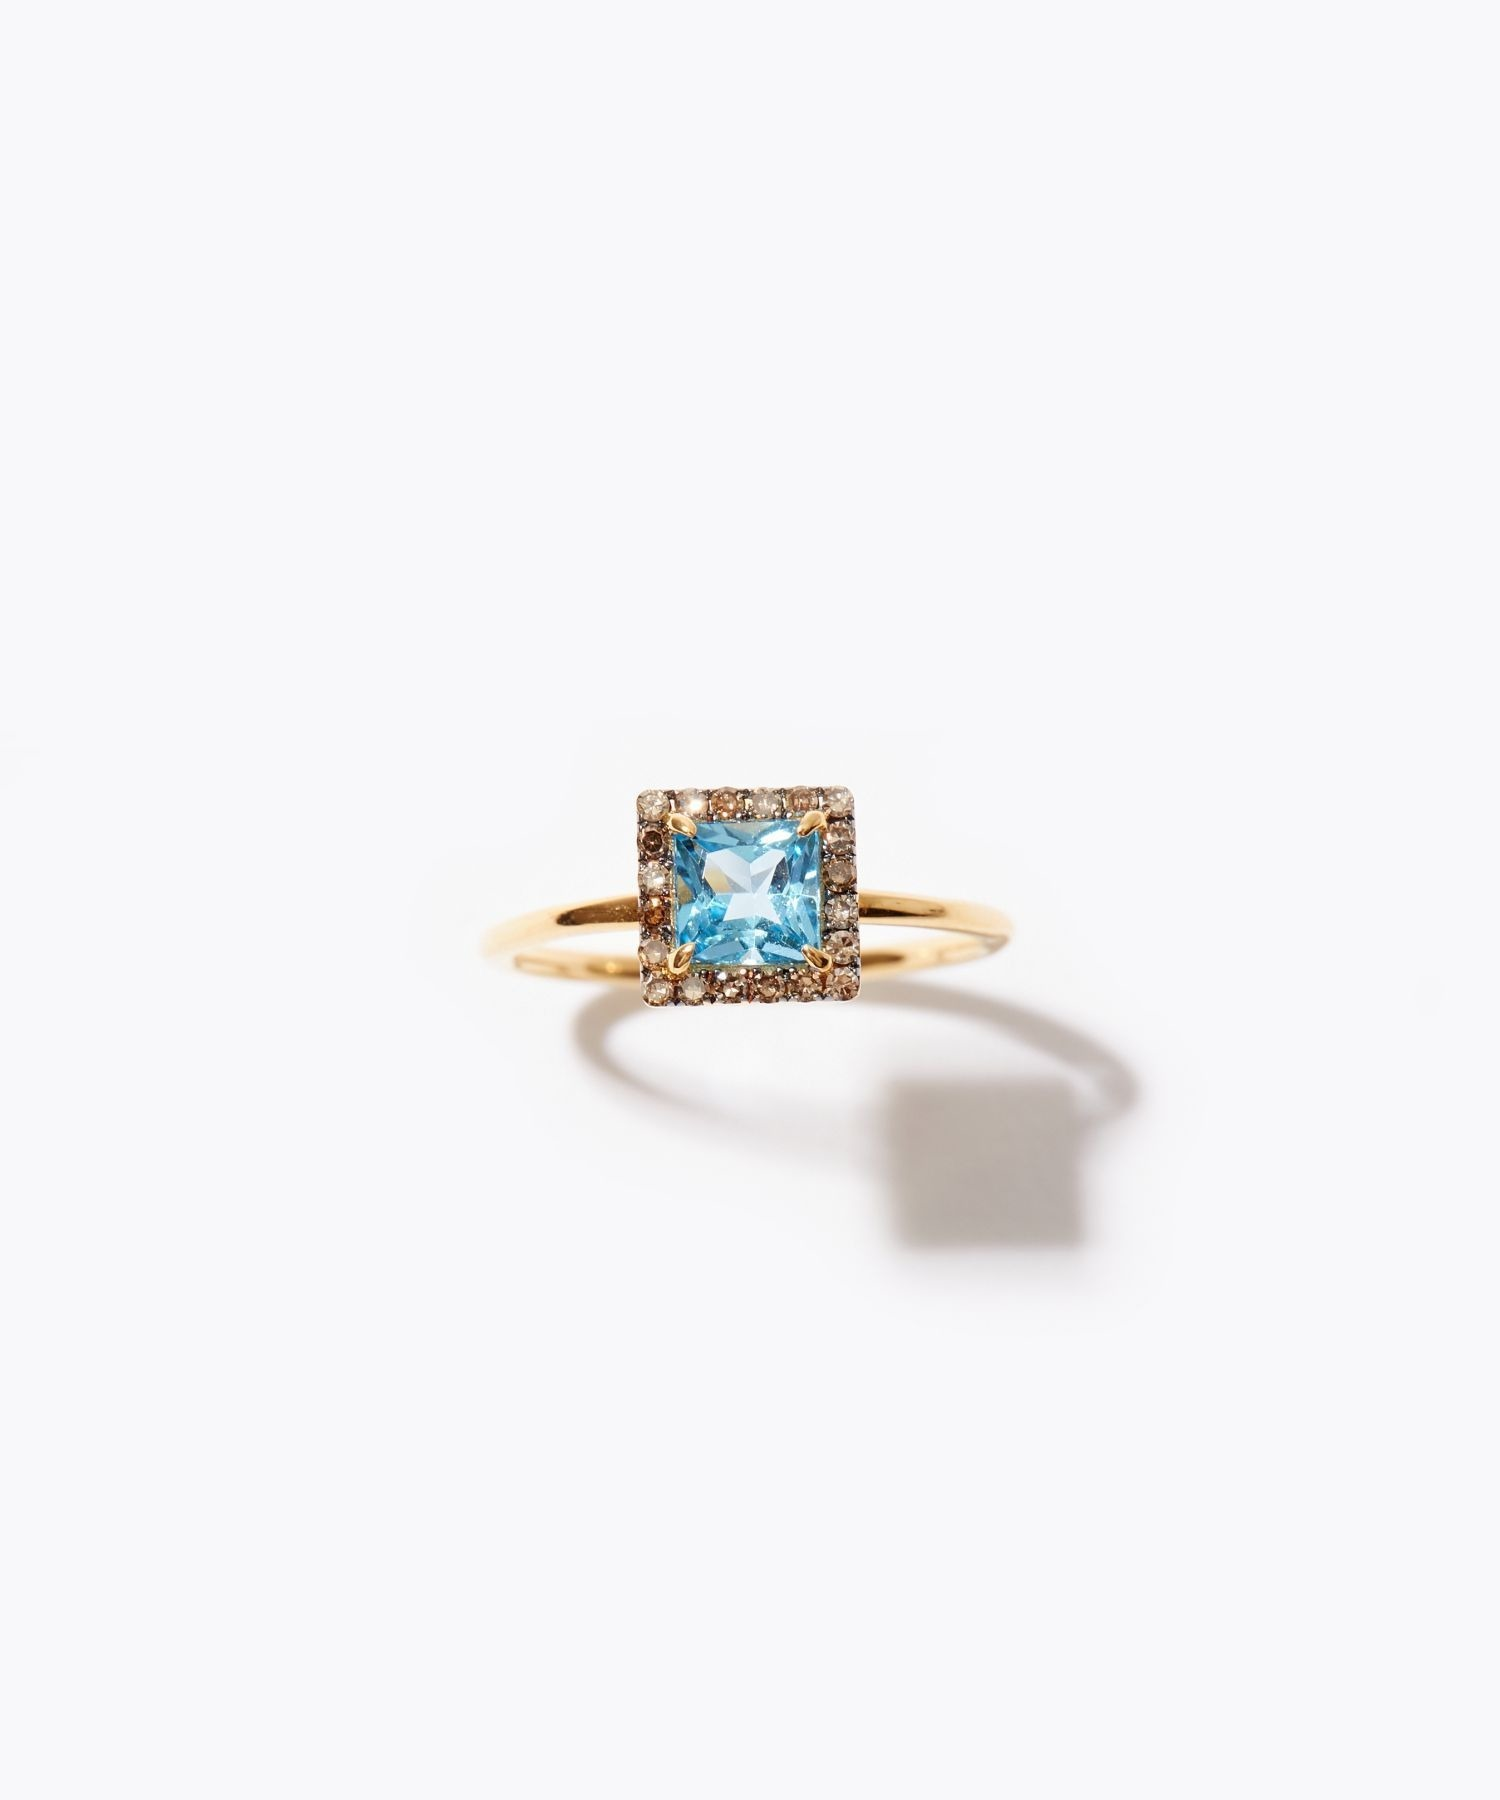 [elafonisi] square blue topaz pave diamond ring